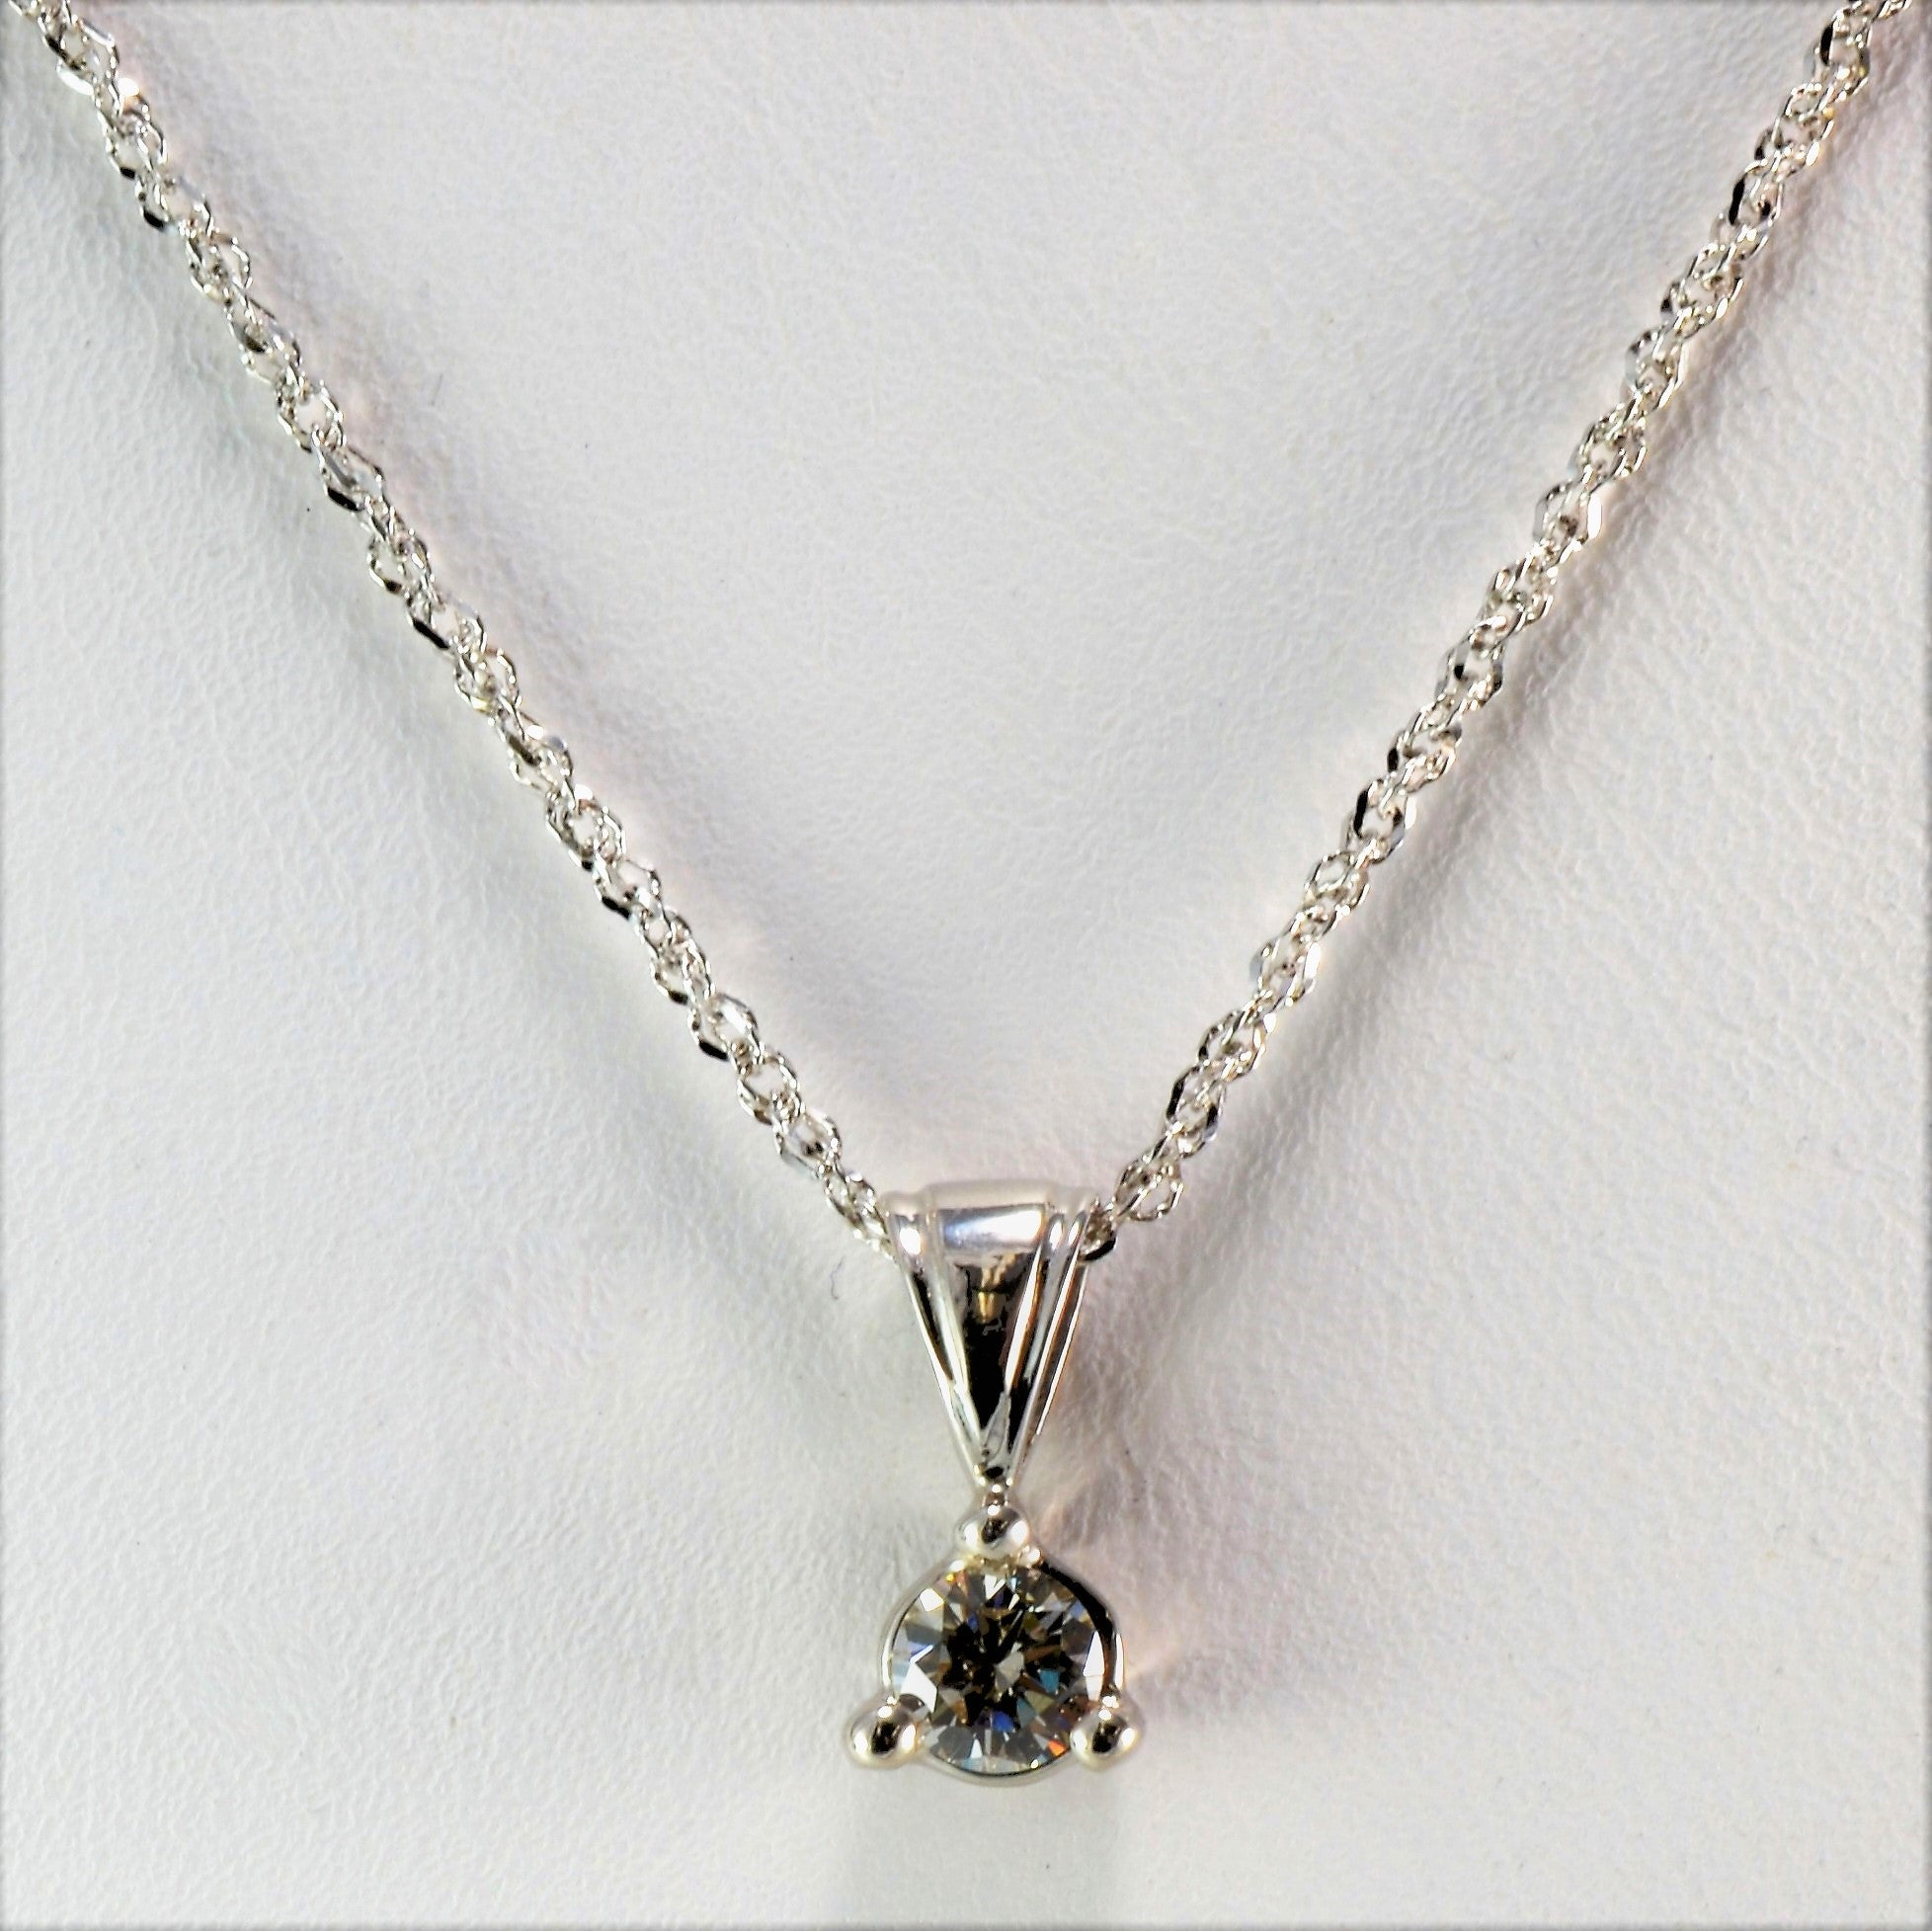 Three Prong Diamond Solitaire Necklace | 0.28 ct, 16"